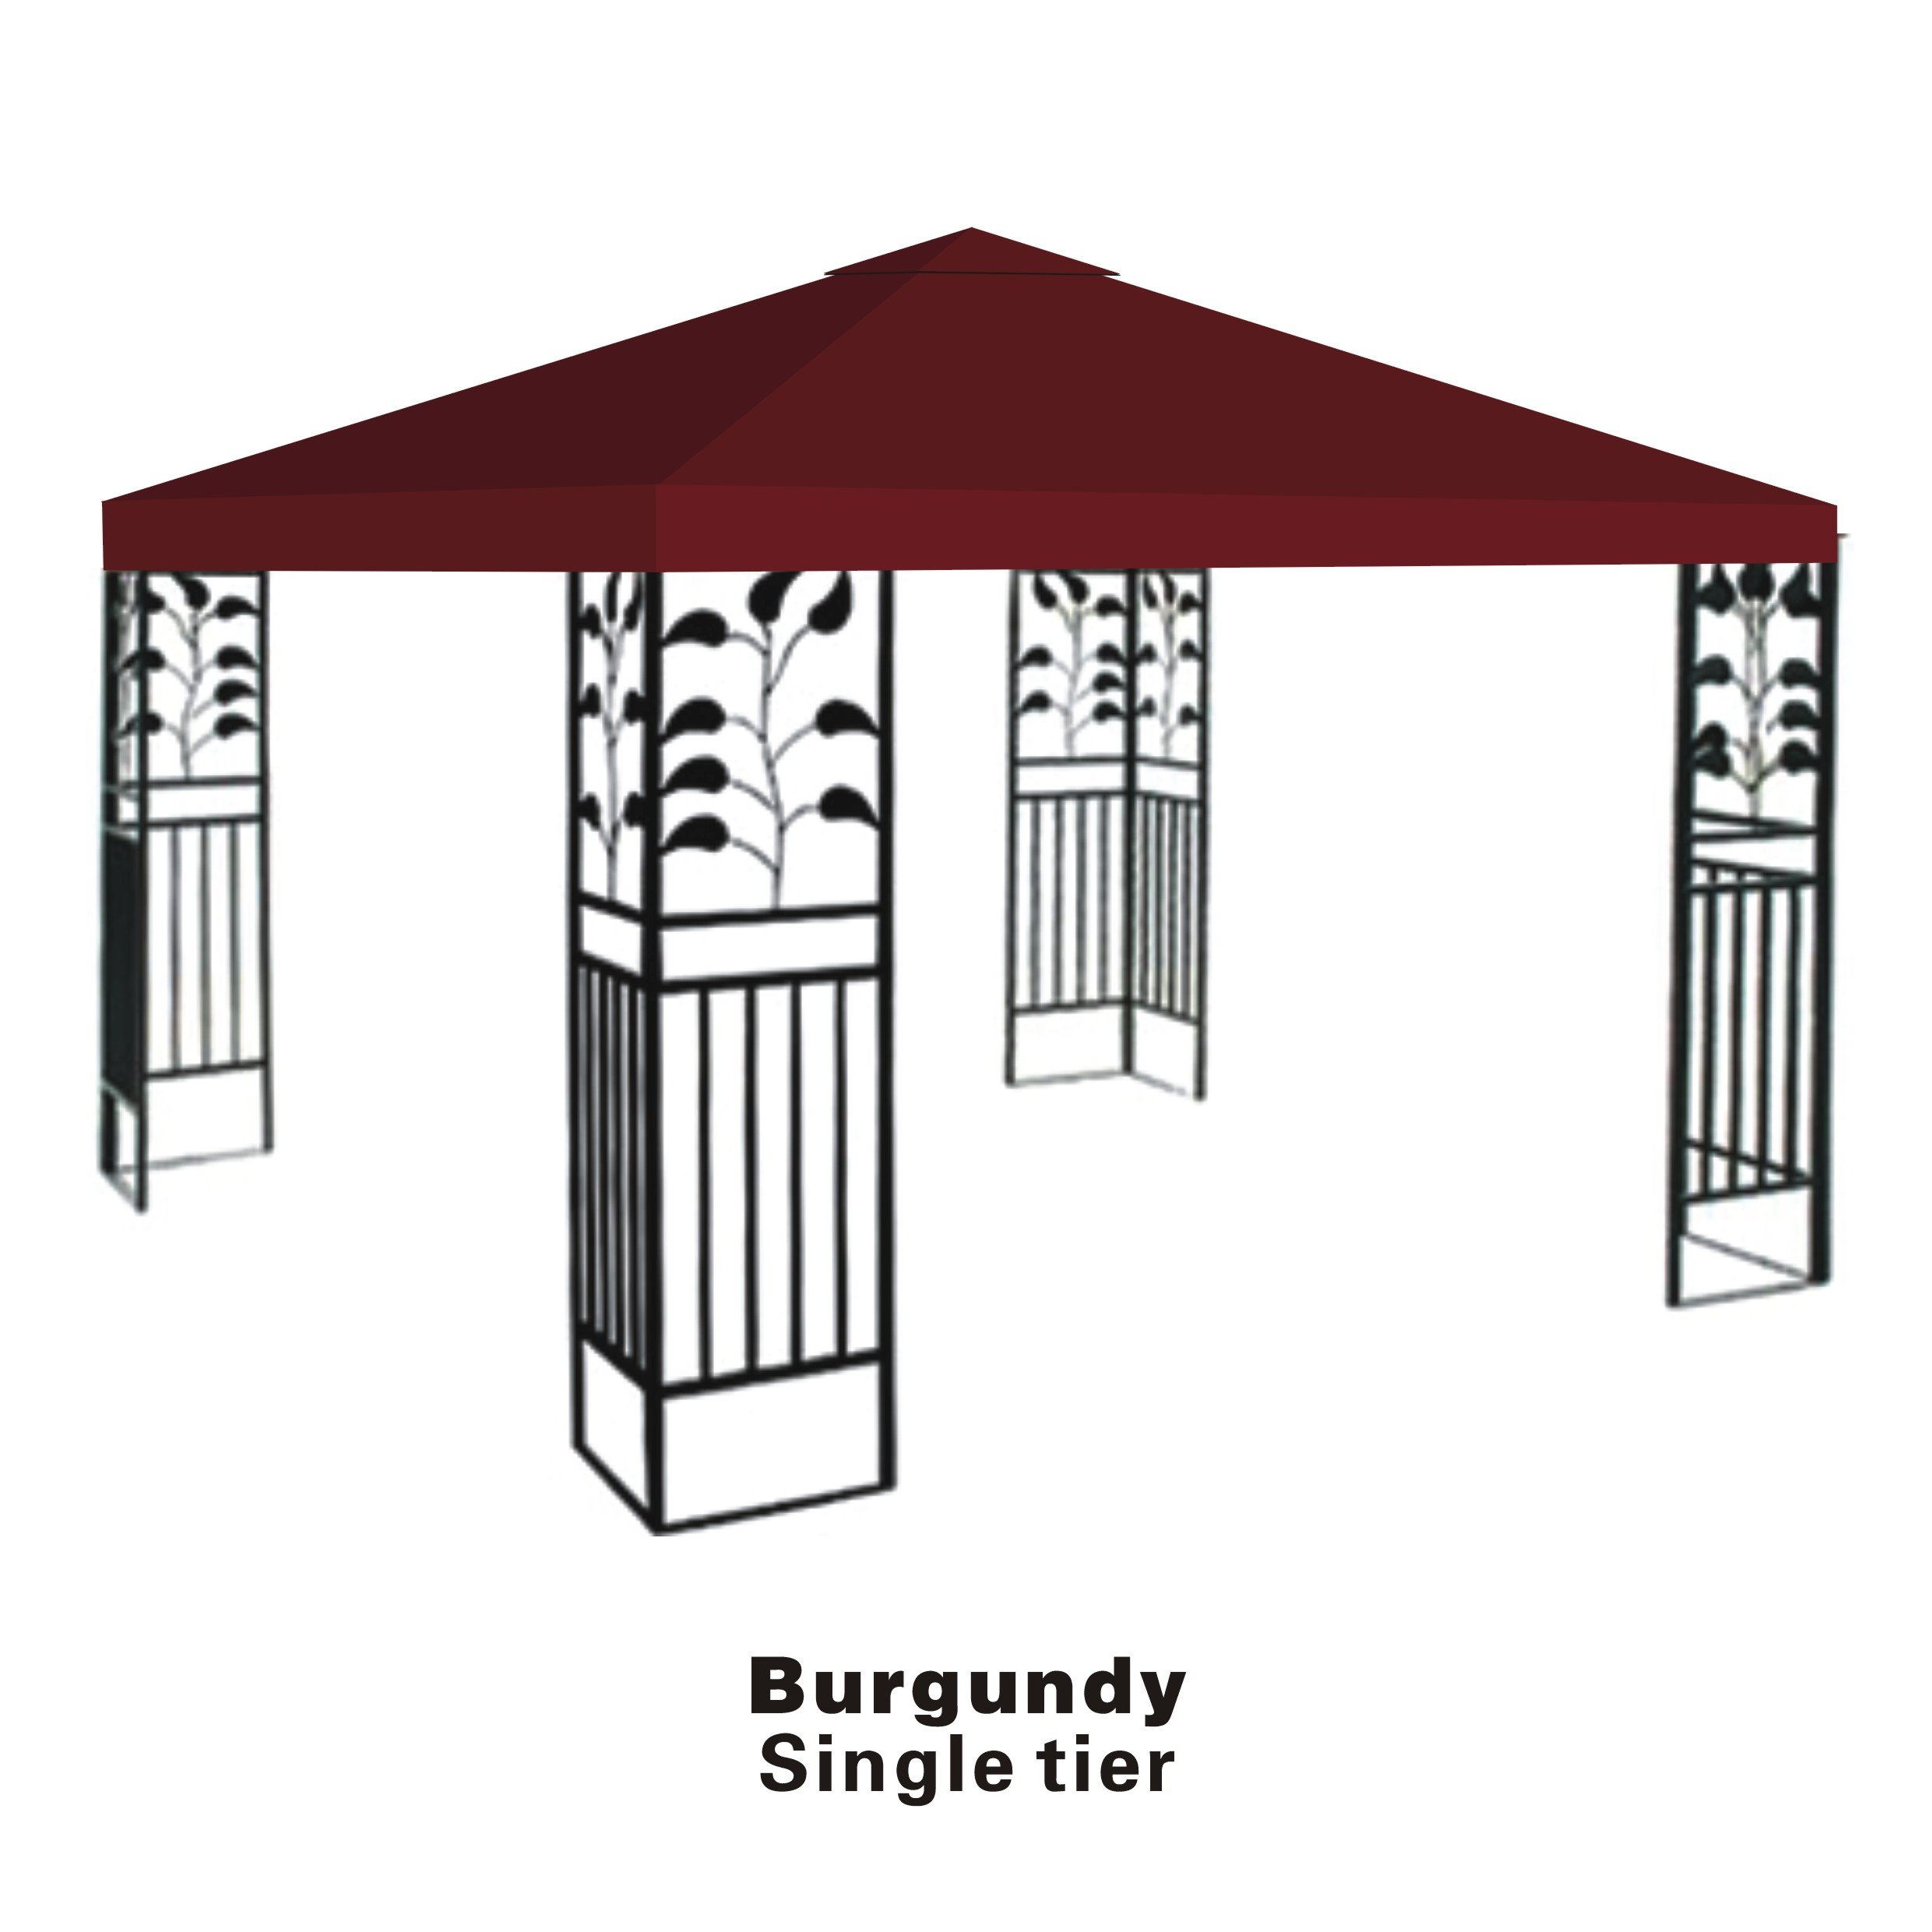 STRONG CAMEL Replacement 10'X10'gazebo canopy top patio pavilion cover sunshade plyester single tier-BURGUNDY